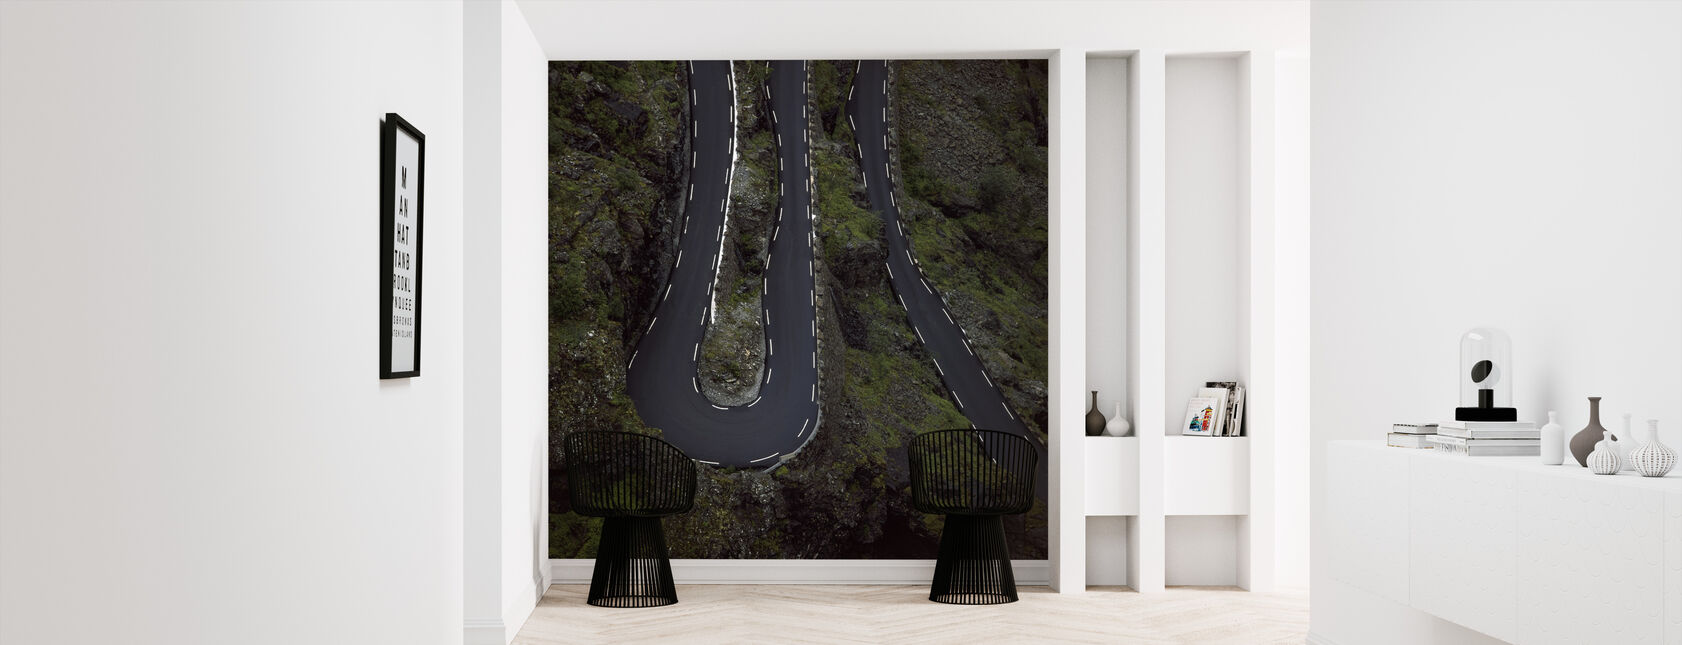 Trollstigen Curves in Rauma, Norway - Wallpaper - Hallway